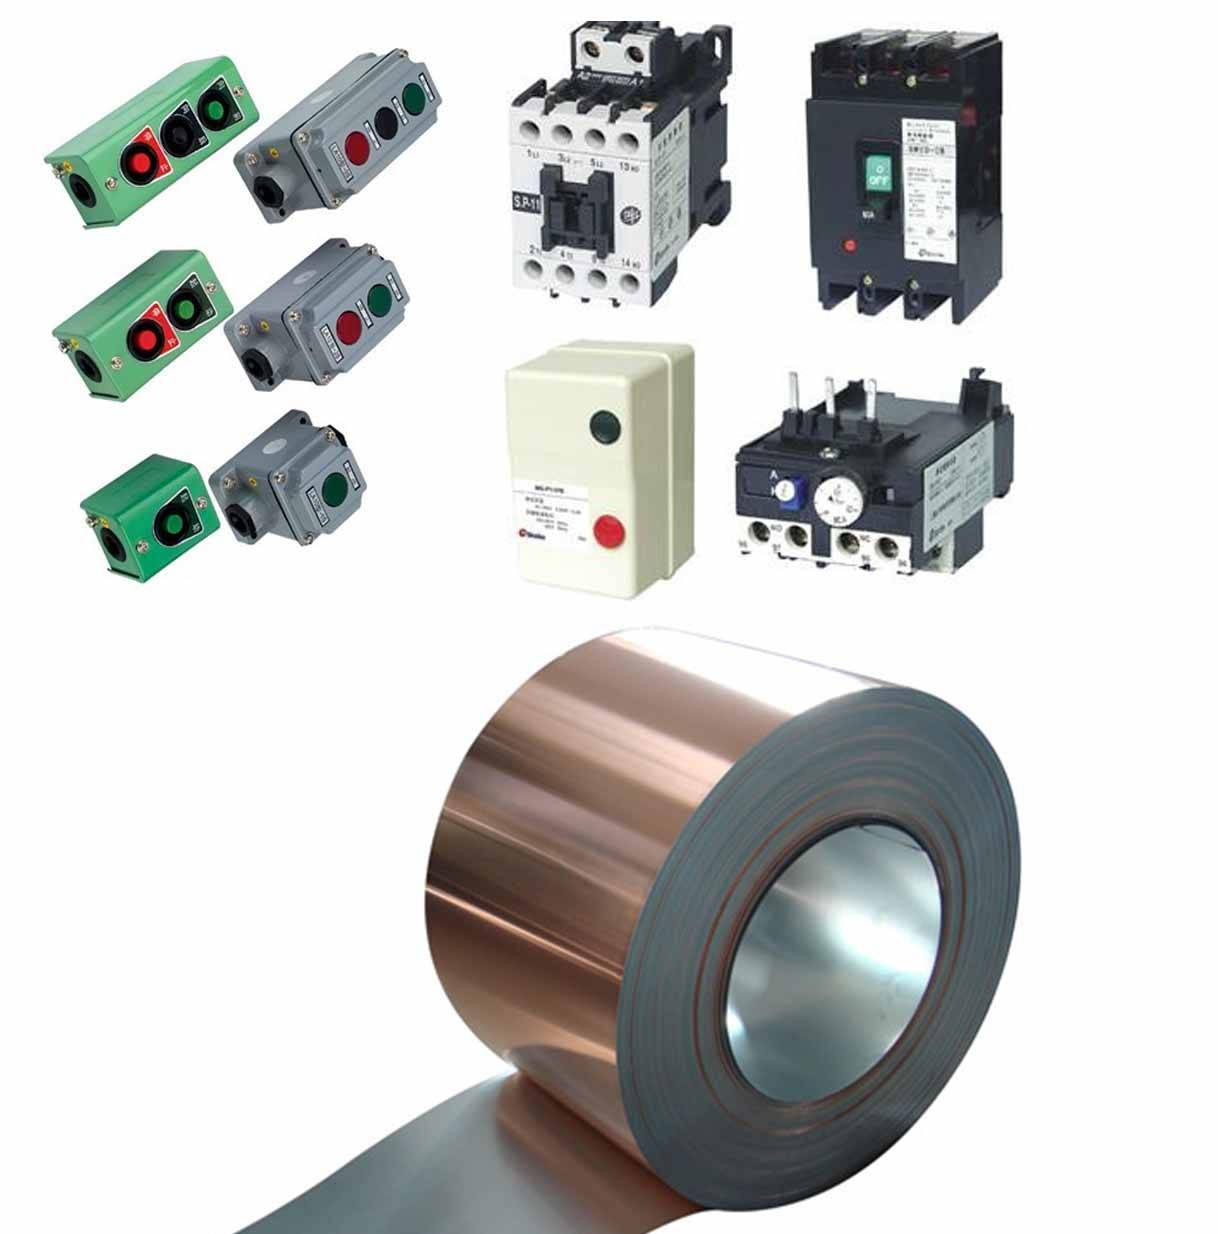 Copper Clad Steel Strip Material for Contactor